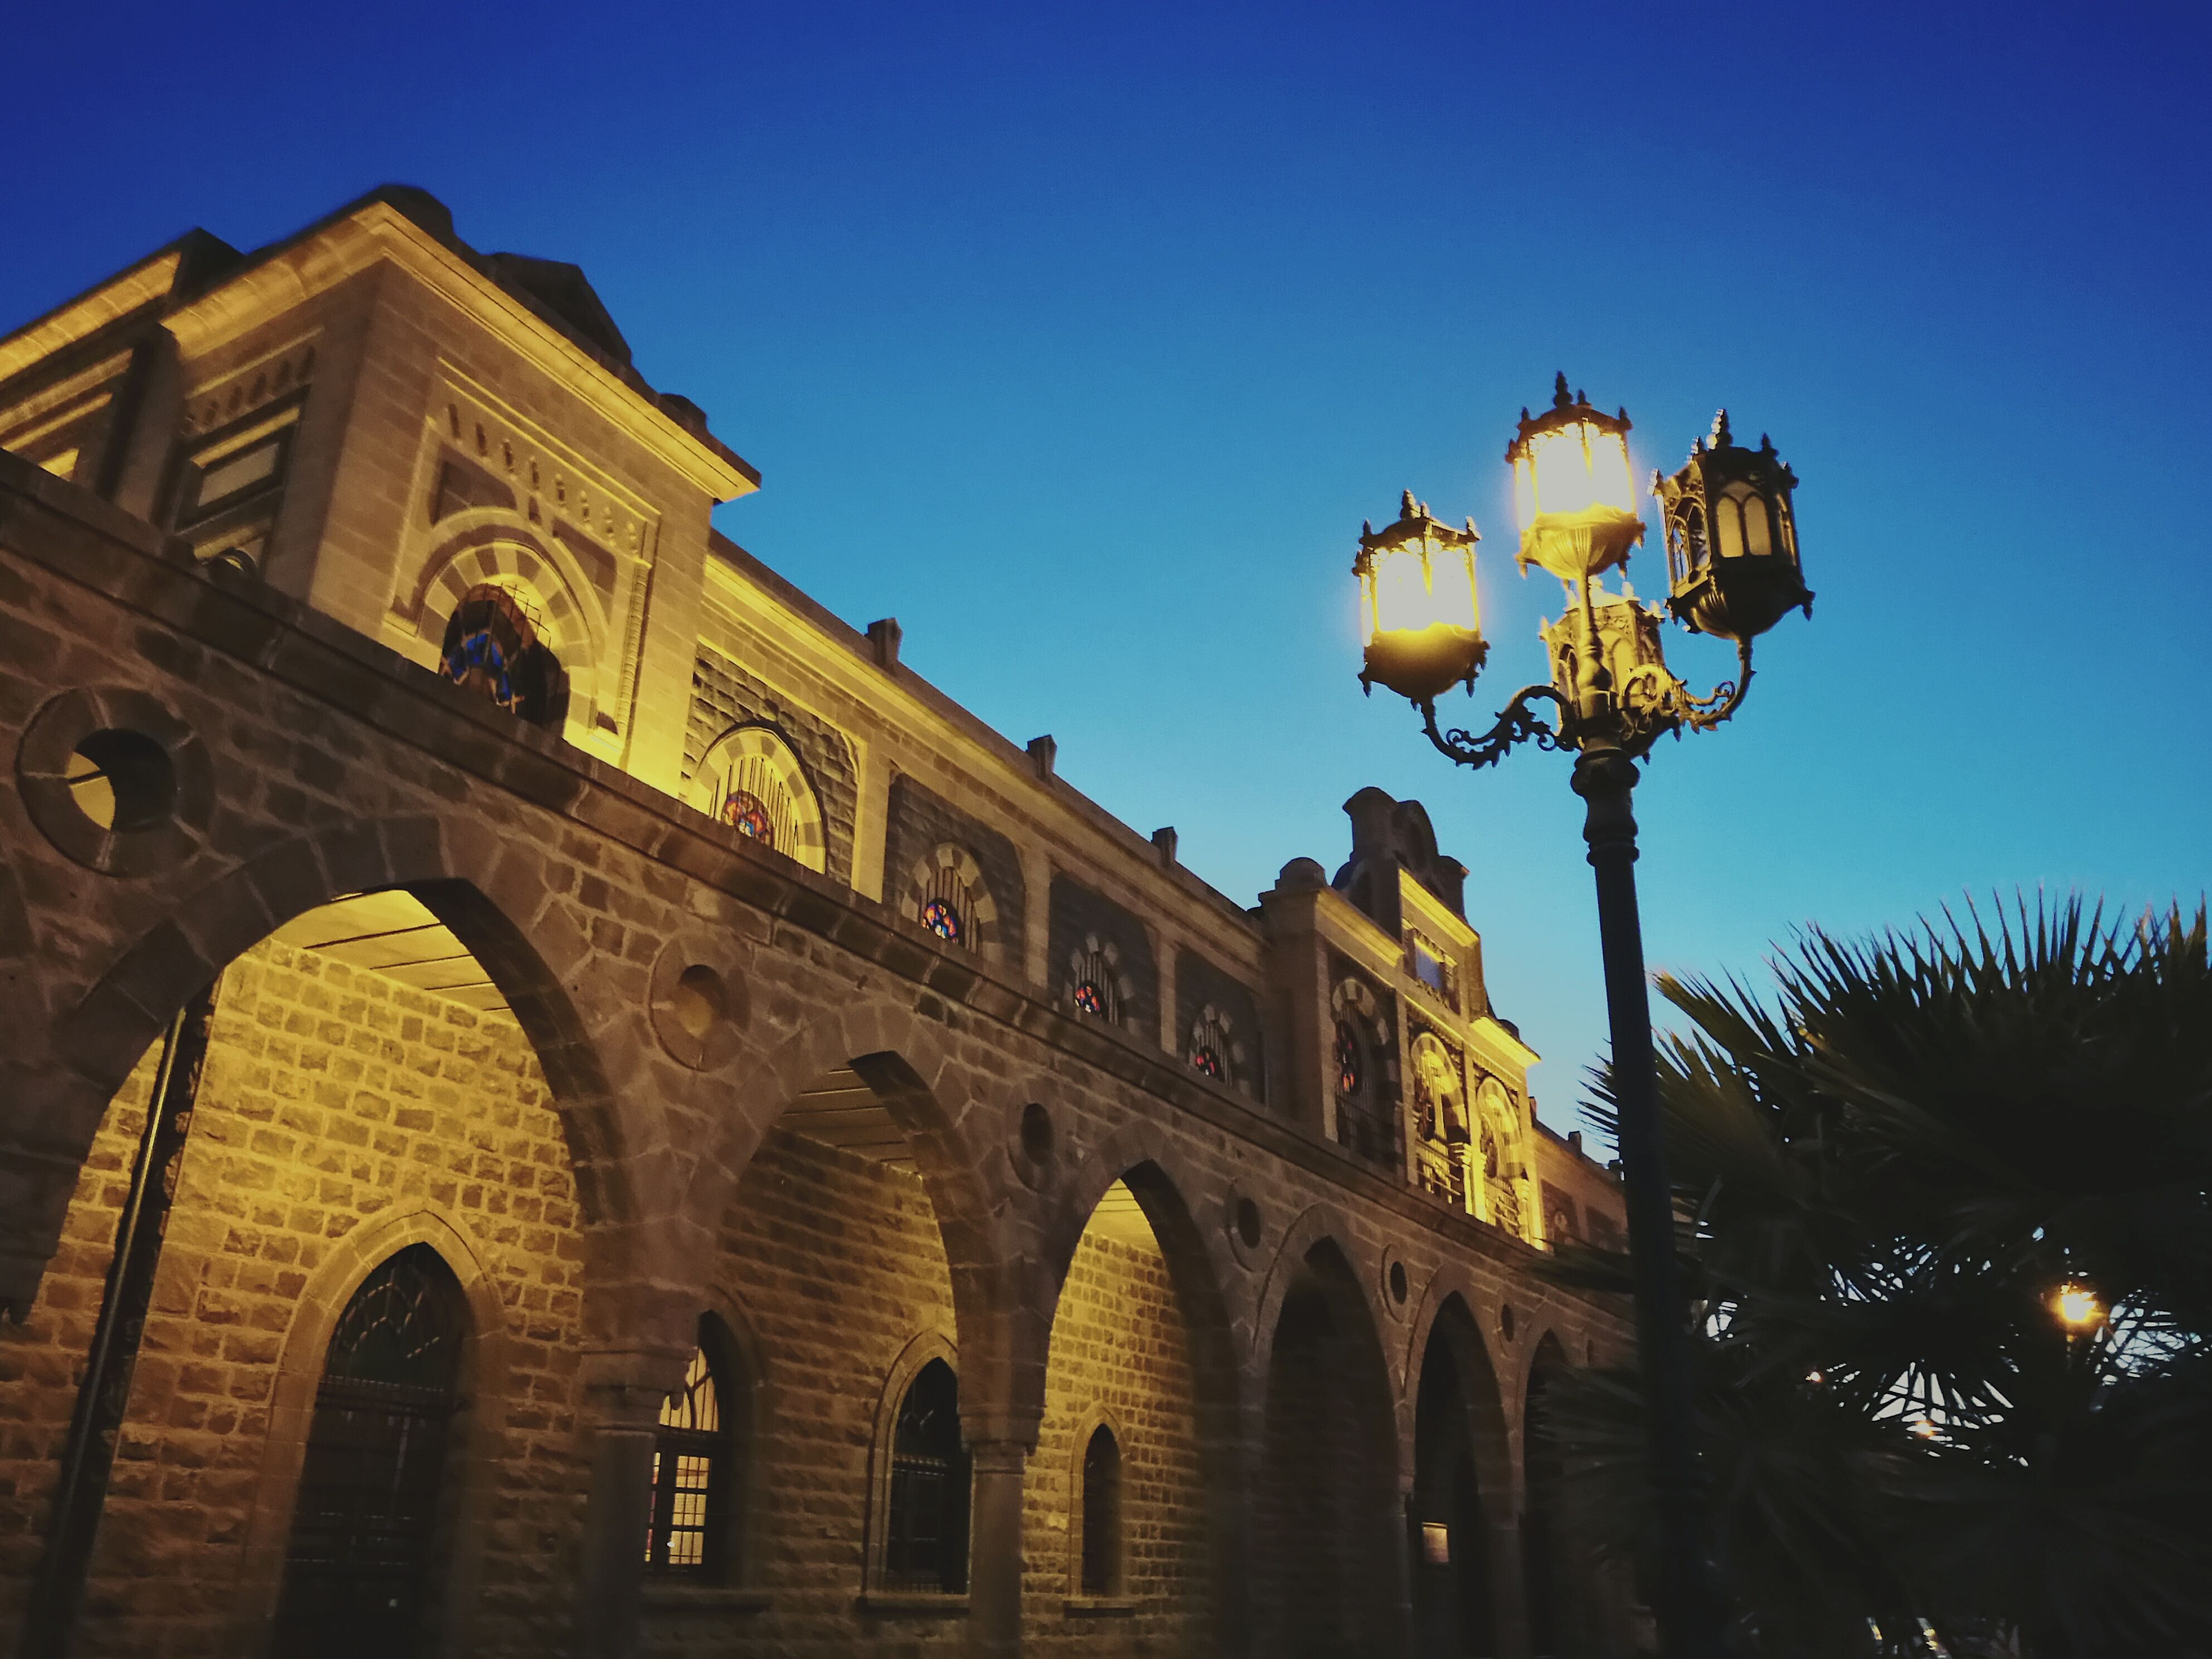 architecture, built structure, clear sky, low angle view, street light, illuminated, arch, blue, lighting equipment, sky, outdoors, facade, travel destinations, city, no people, architectural column, electric lamp, ornate, tourism